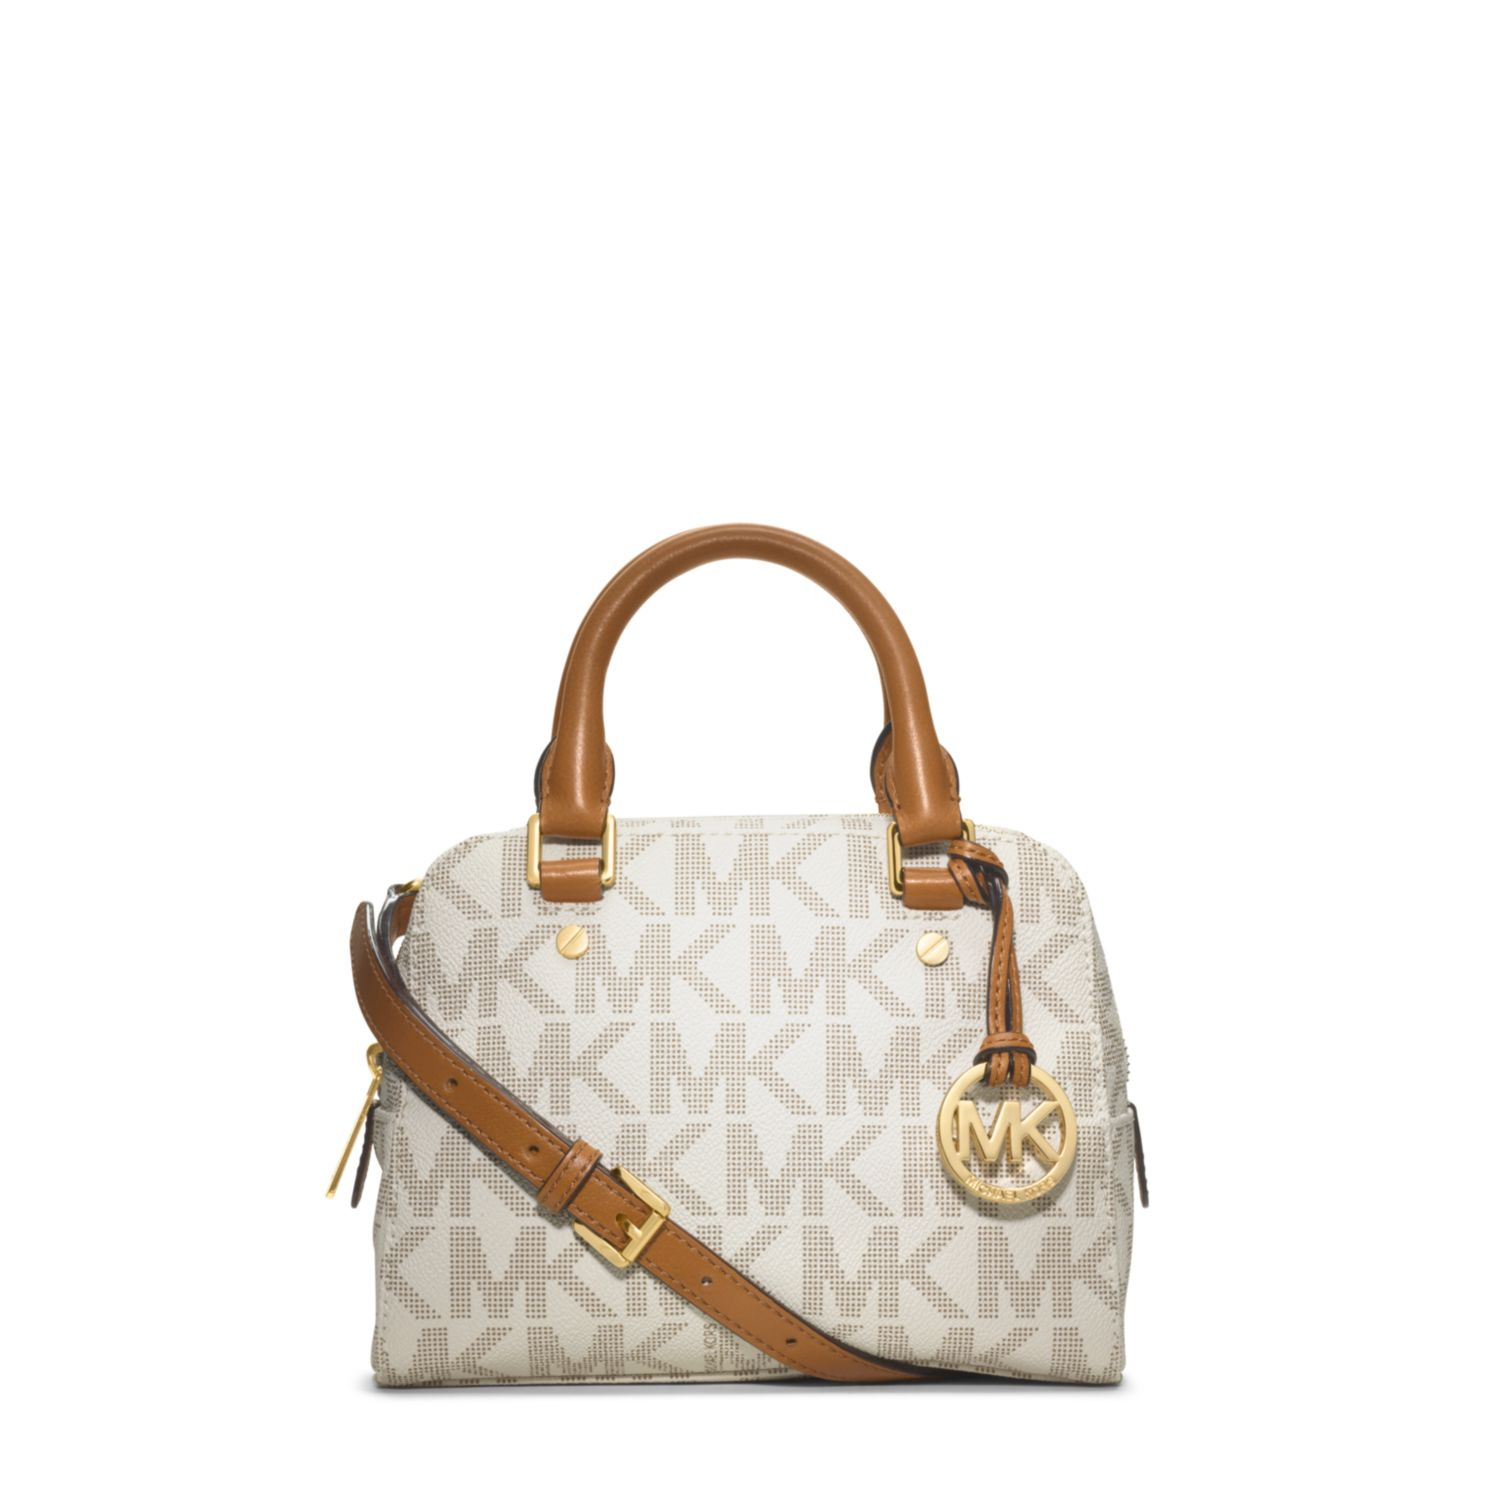 cabc2837ae05 Michael Kors Jet Set Travel Logo Small Satchel in White - Lyst